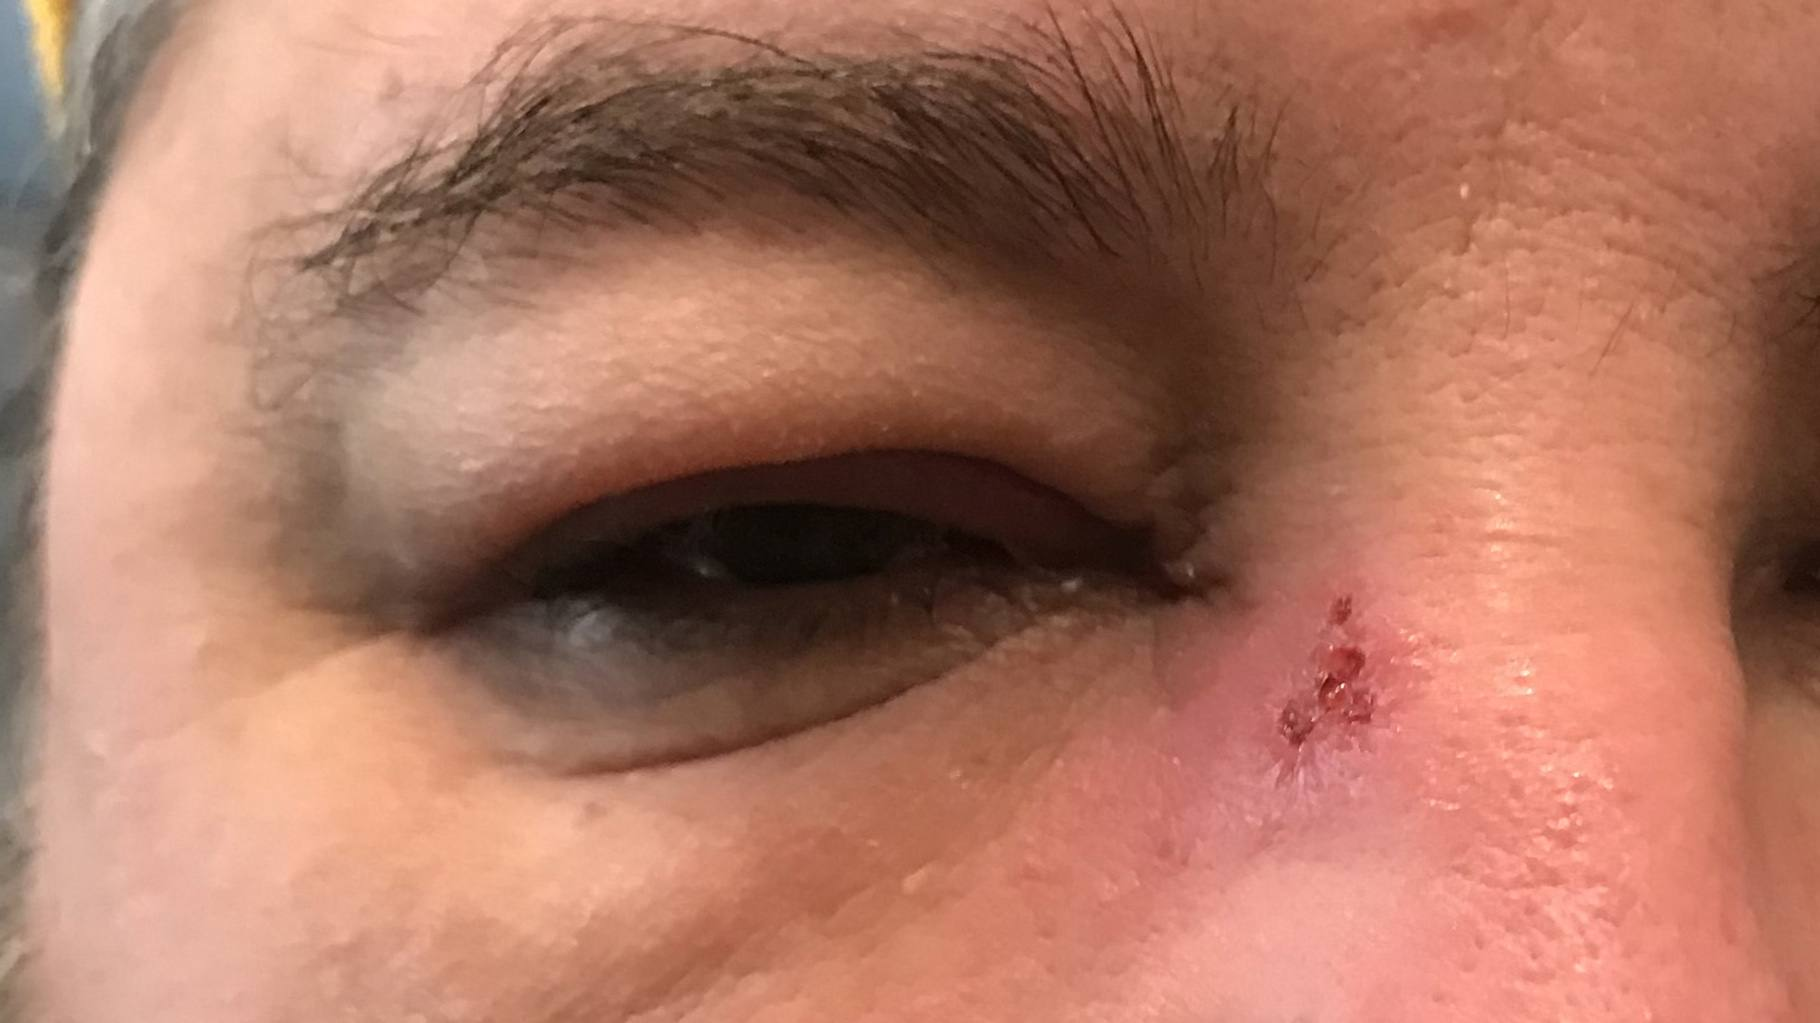 A swollen eye with shingles lesion on the bridge of the nose.